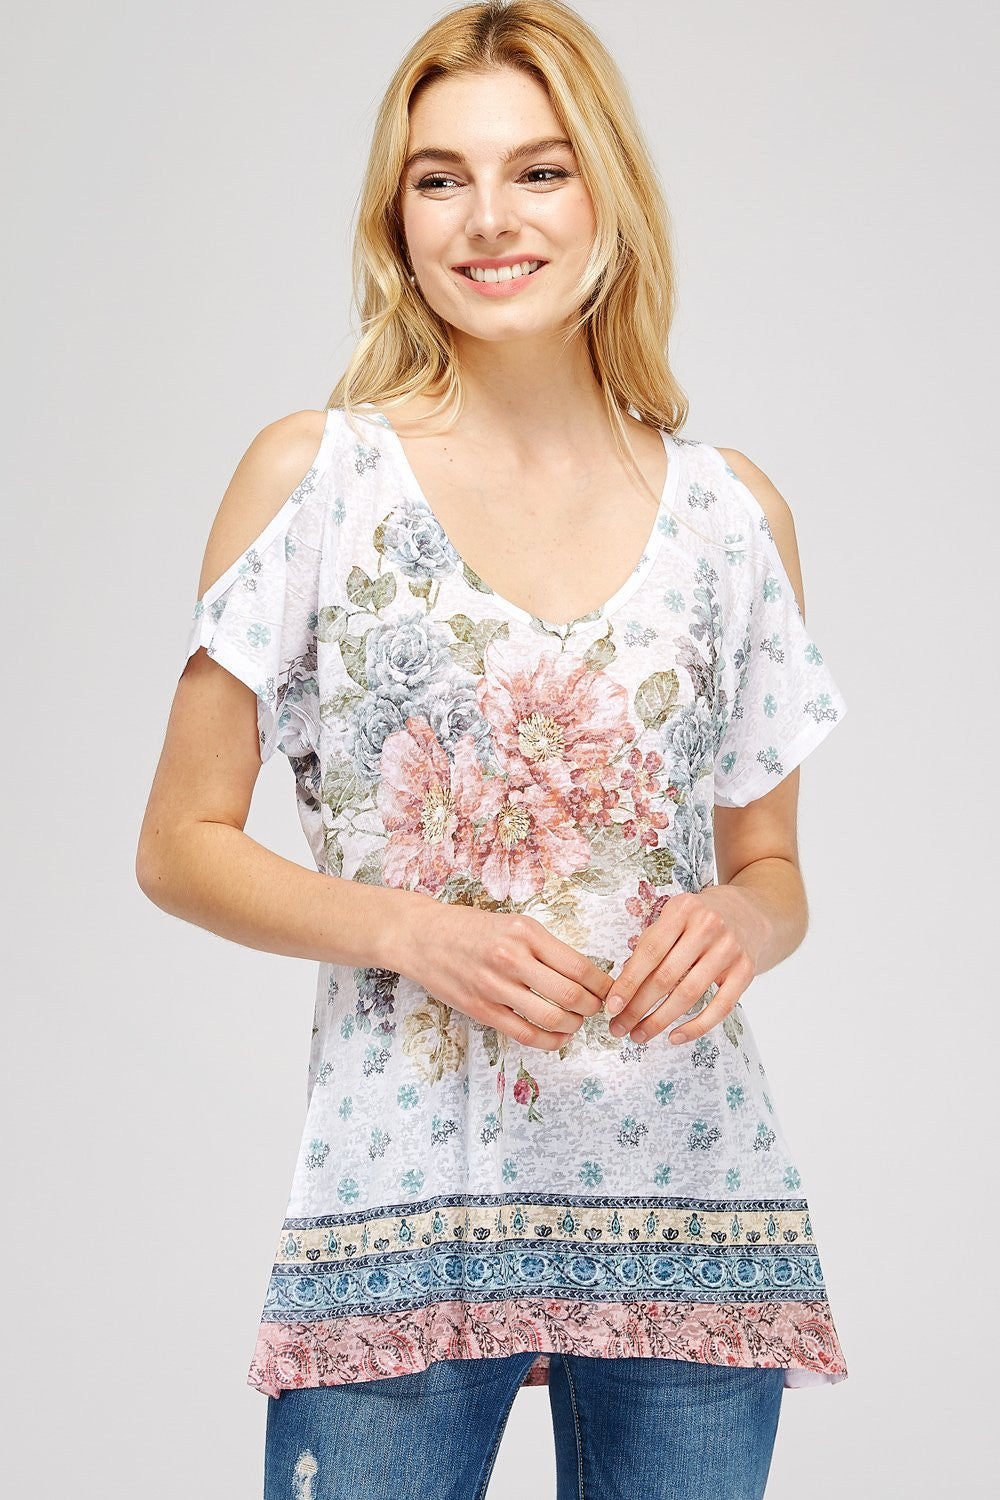 Wholesale Clothing, Online Wholesale Clothing, Women Clothing, Bohemian, Free People, tiedye, specialty wash, wholesale seller, wholesale women clothing shop, gypsy look, USA made, URBAN X APPAREL-TOPS-UTS3306, fashiontrend2019